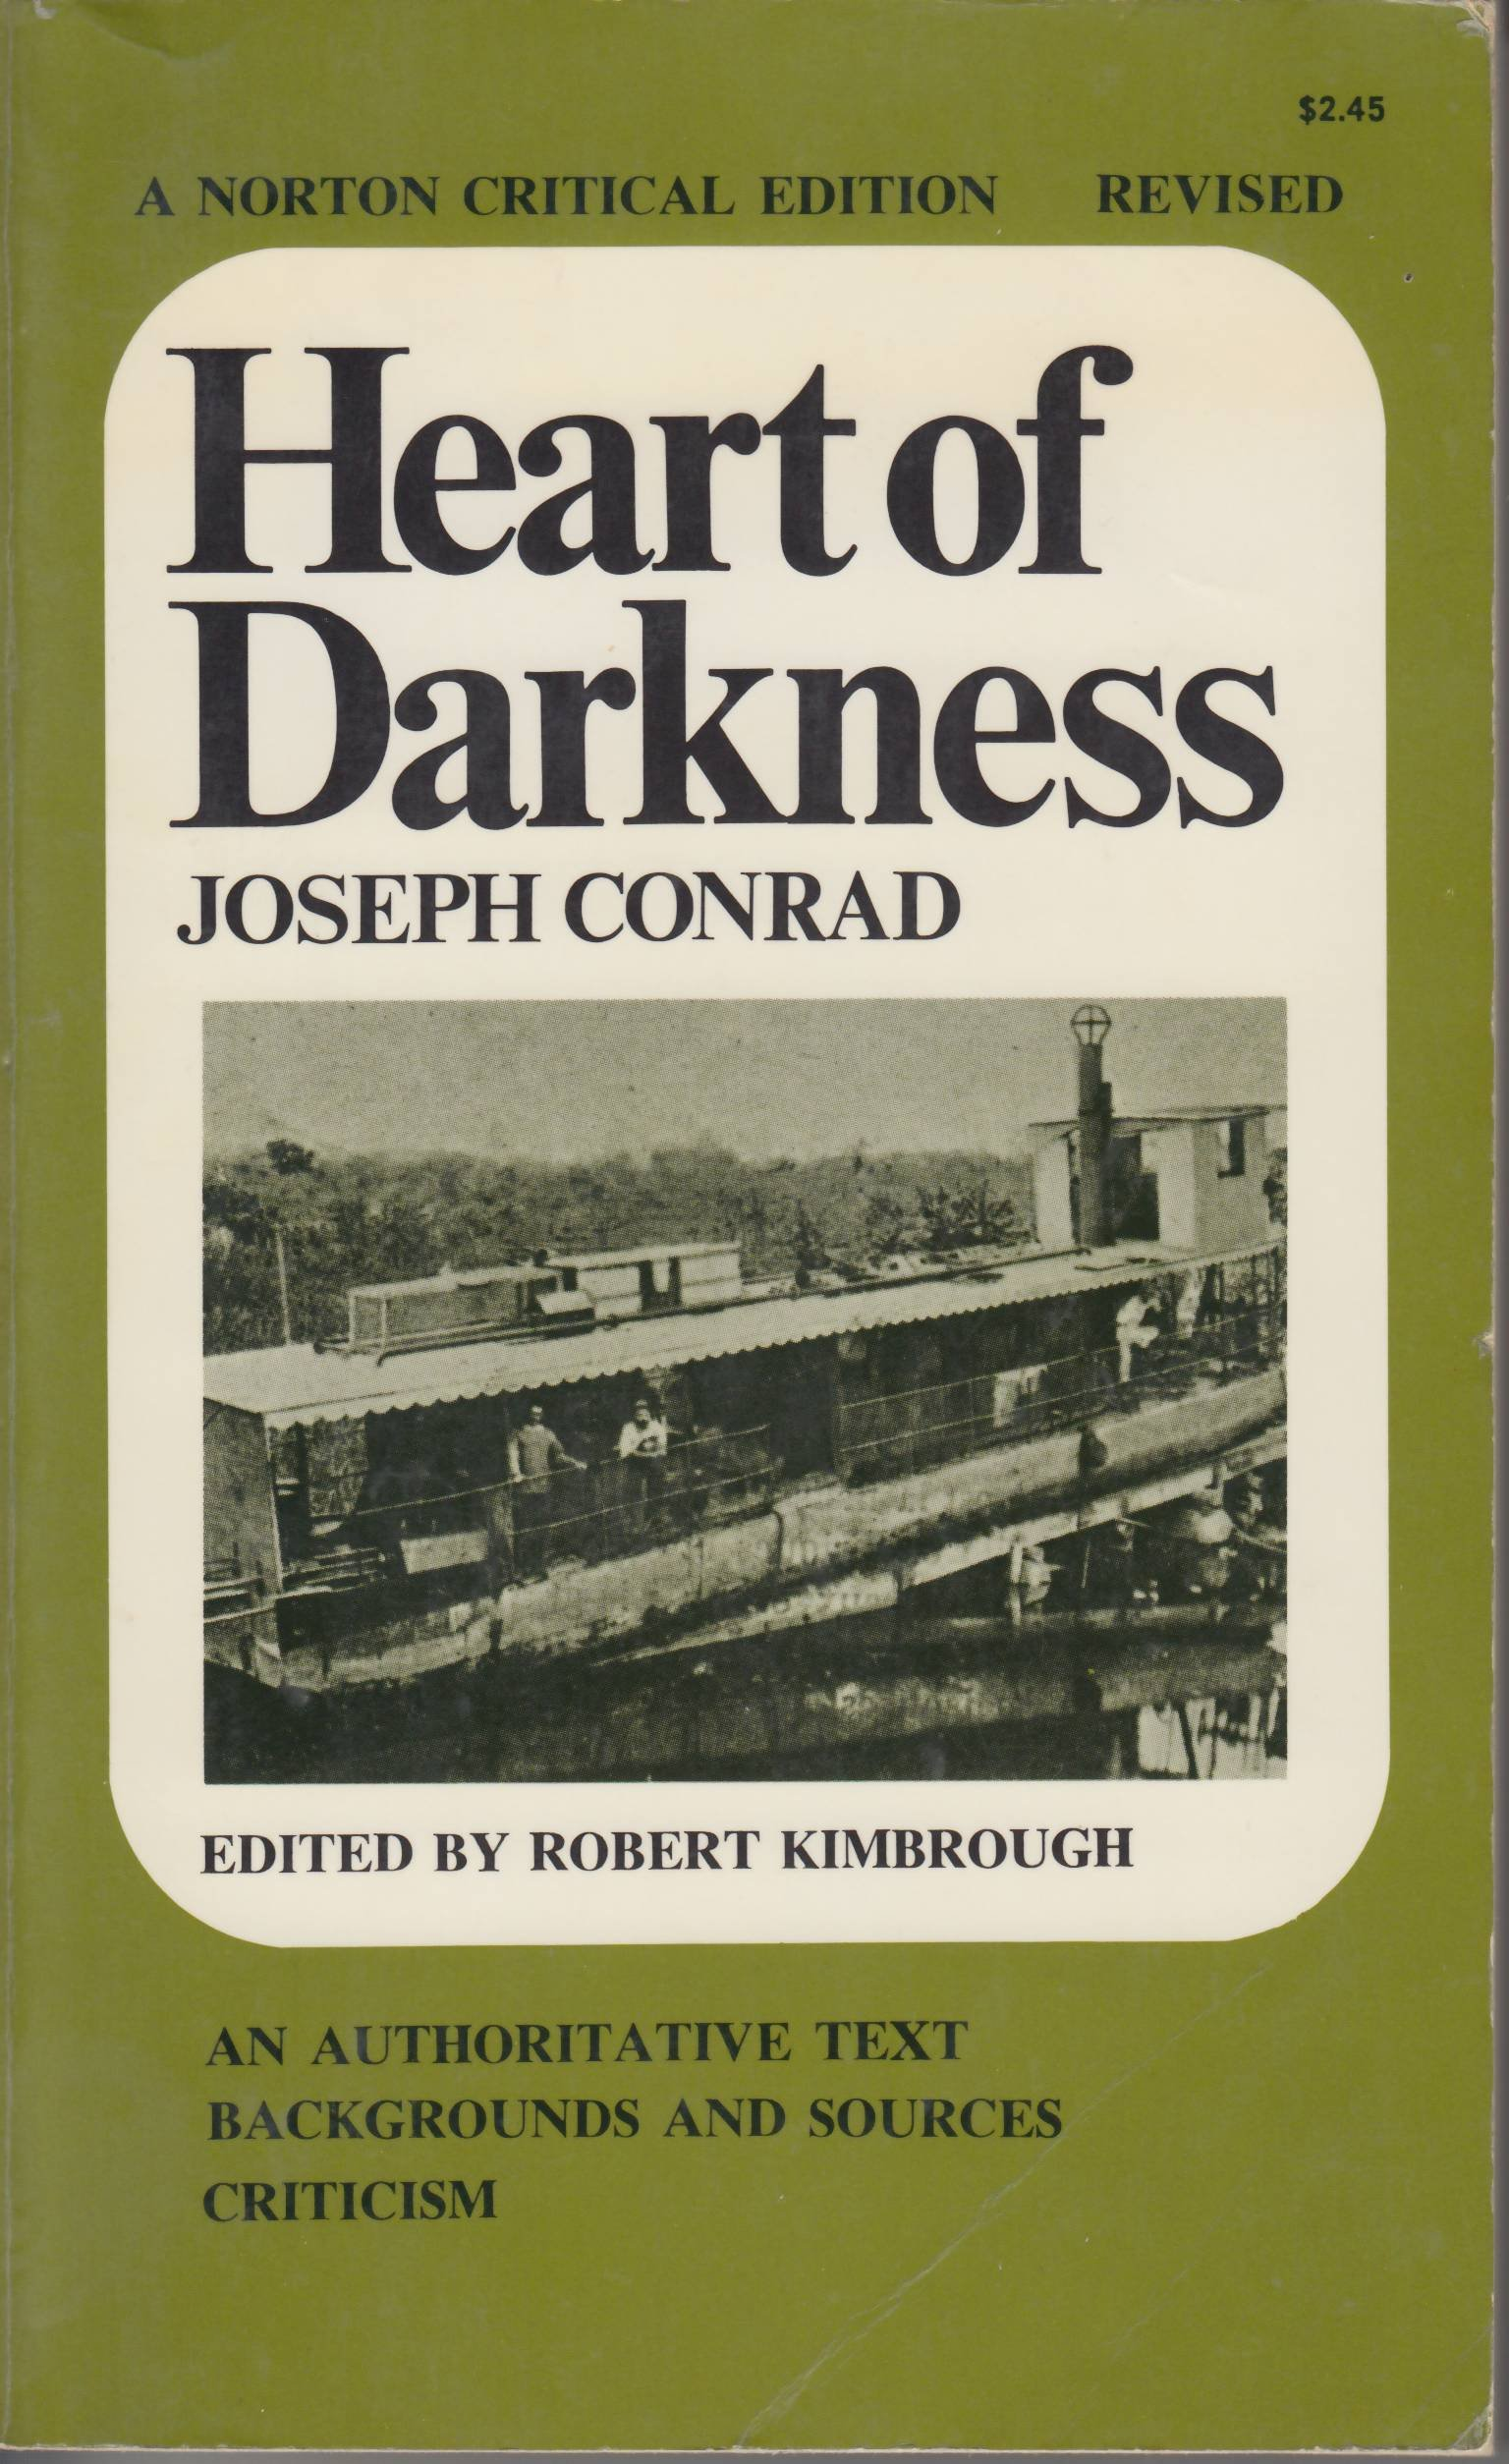 College Vs High School Essay Heart Of Darkness An Authoritative Text Backgrounds And Sources Essays  In Criticism Norton Critical Editions Joseph Conrad   Sample Proposal Essay also Environmental Science Essays Heart Of Darkness An Authoritative Text Backgrounds And Sources  Essays On Science